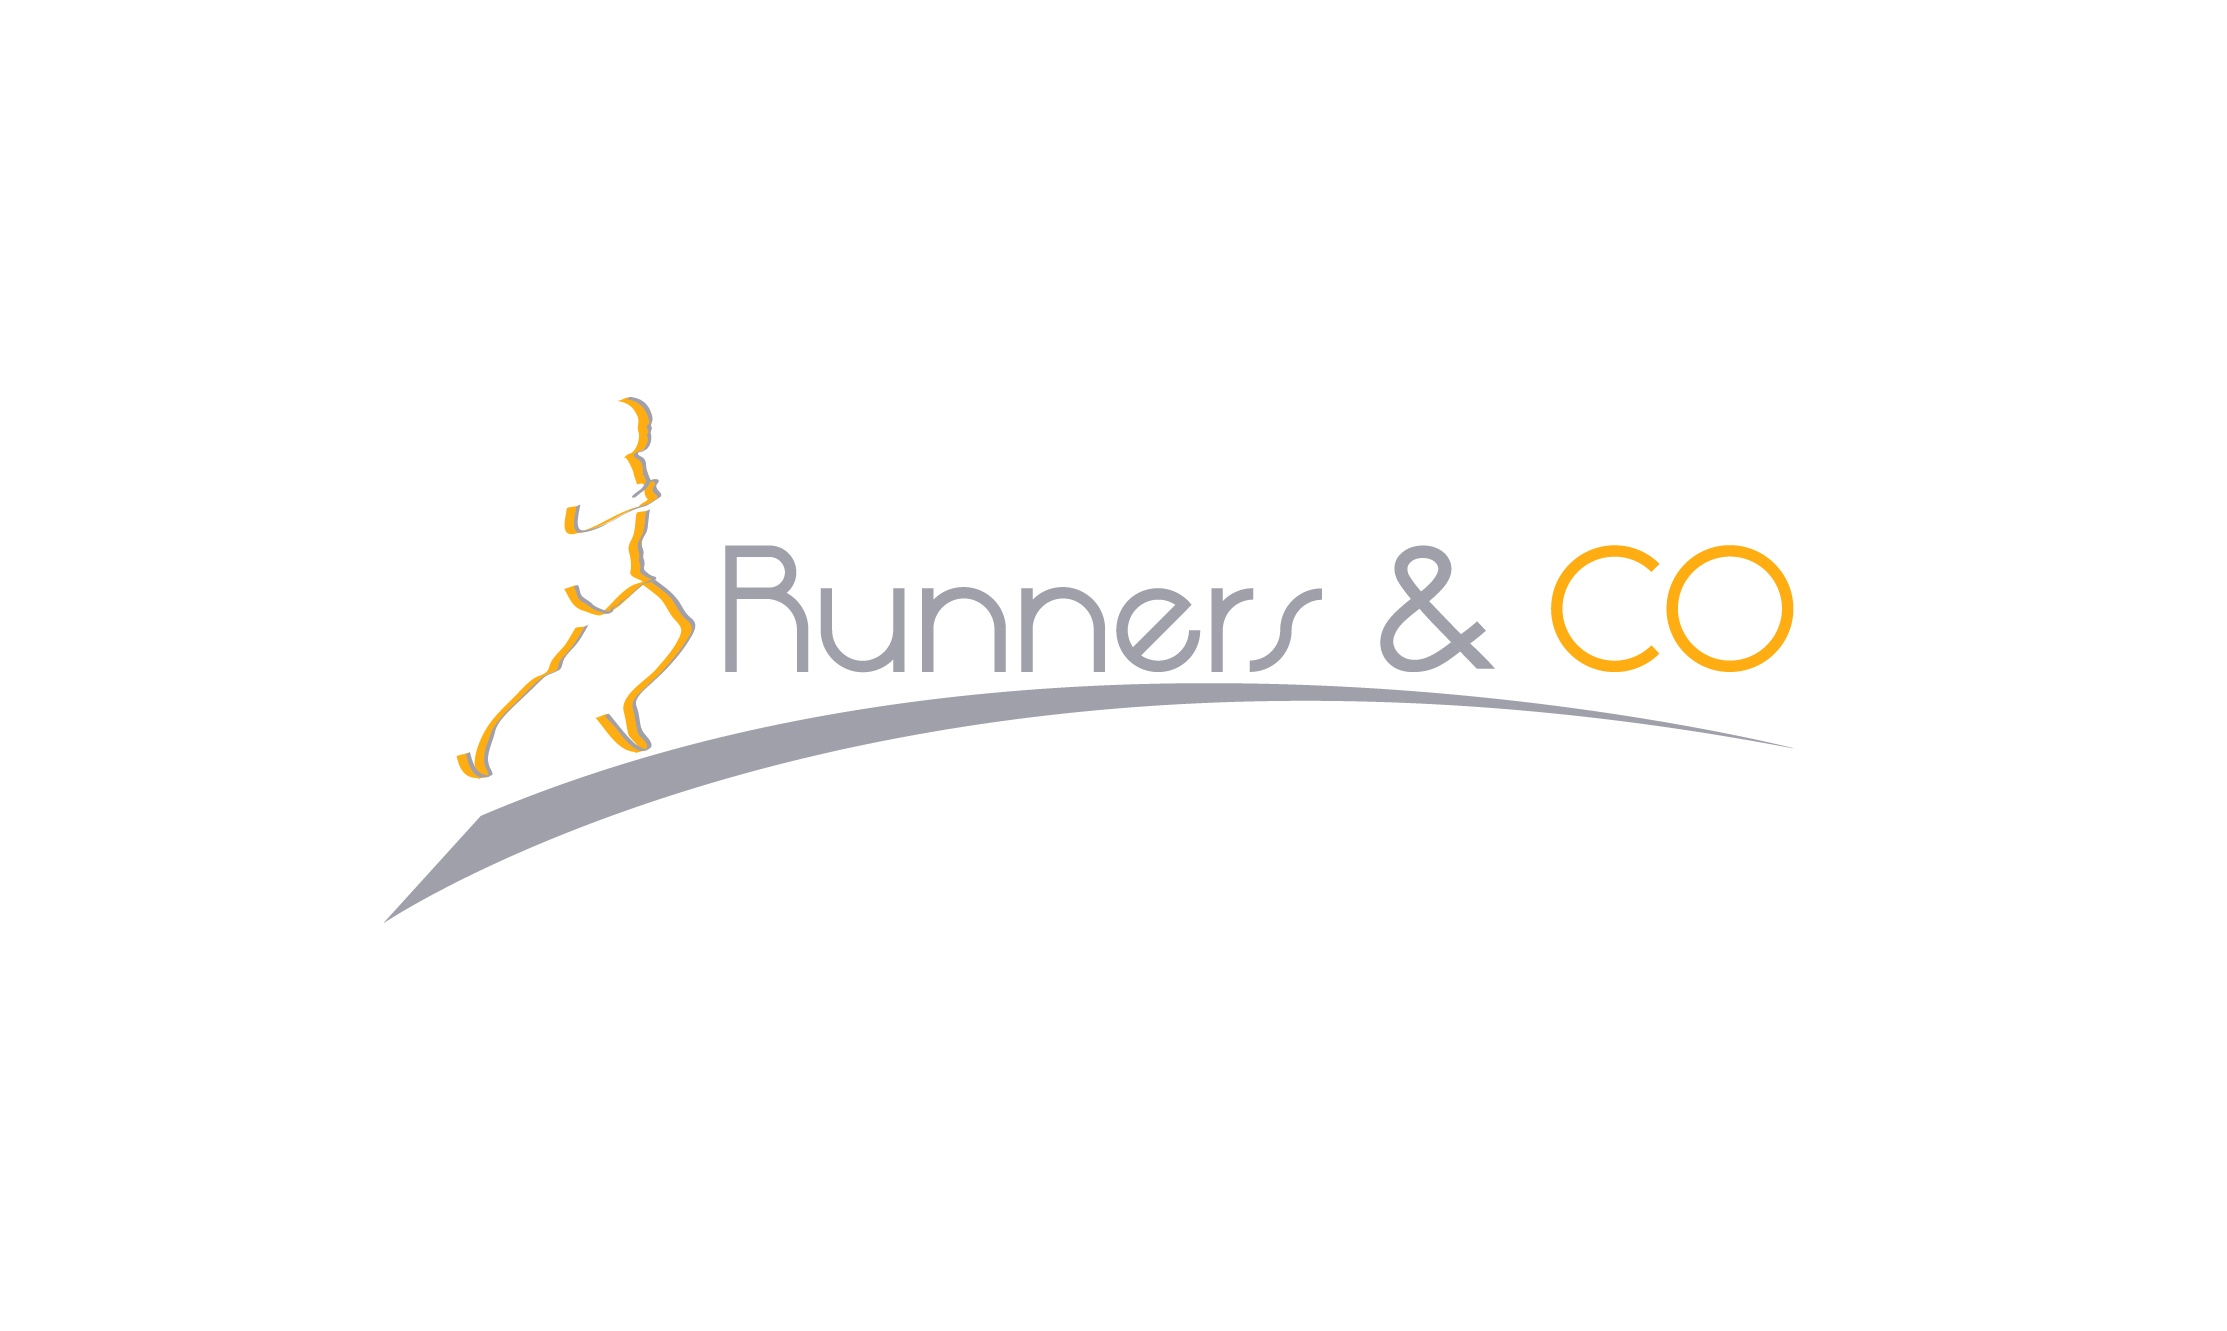 logo site de course à pied Runners & Co